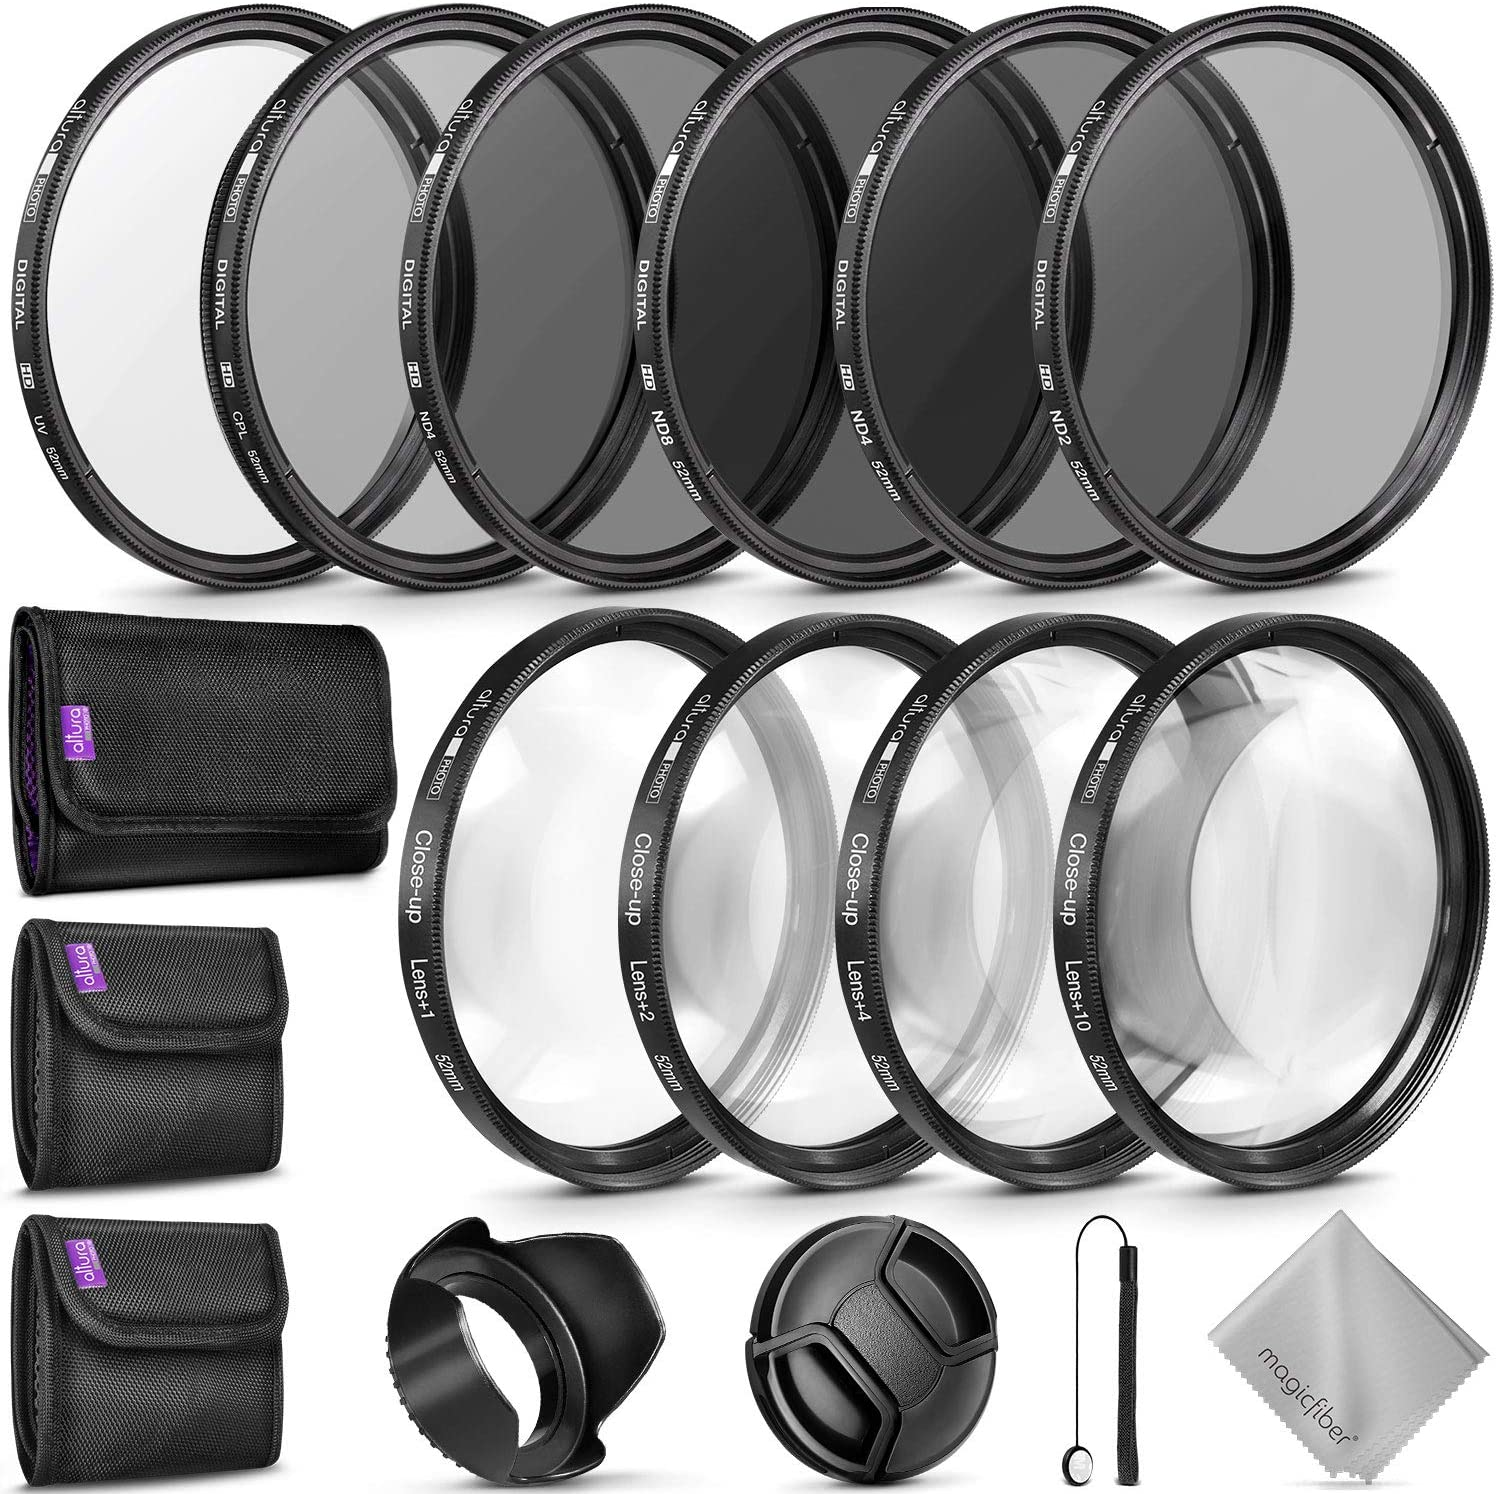 Amazon Com 52mm Complete Lens Filter Accessory Kit For Nikon D3300 D3200 D3100 D3000 D5300 D5200 D5100 D5000 D7000 D7100 Dslr Camera Camera Photo